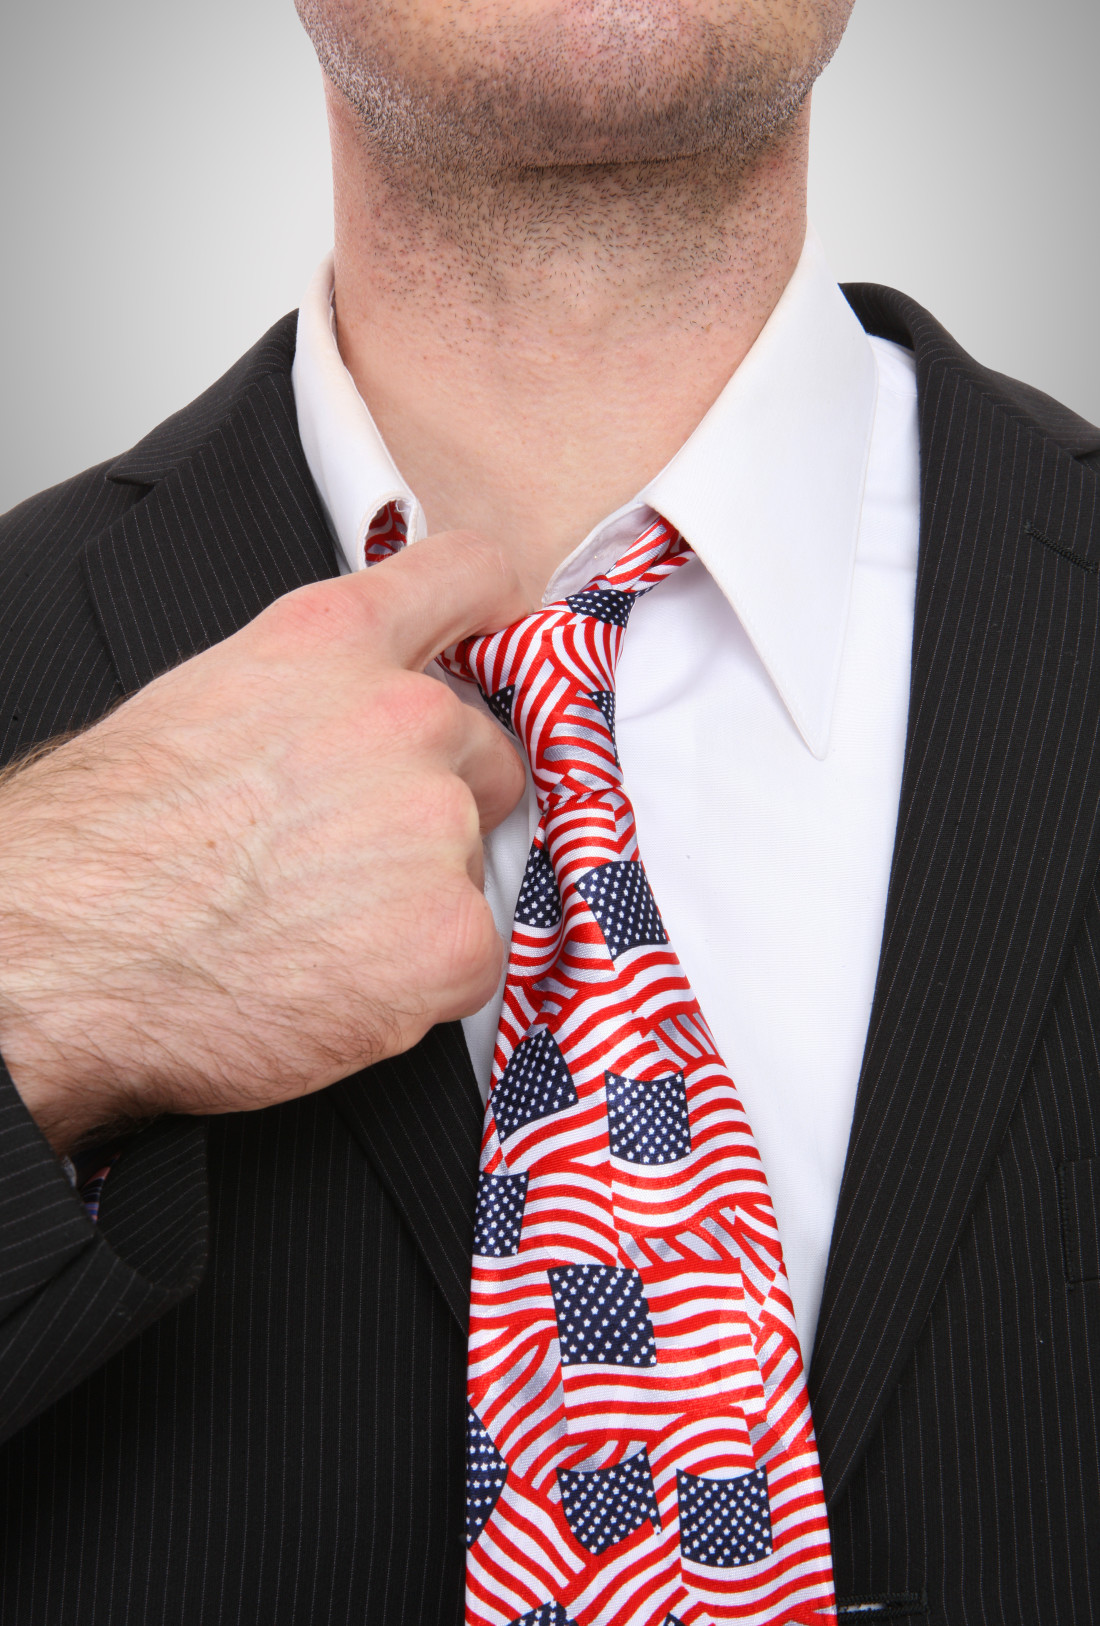 Image of person in suit wearing a neck tie with American Flag print